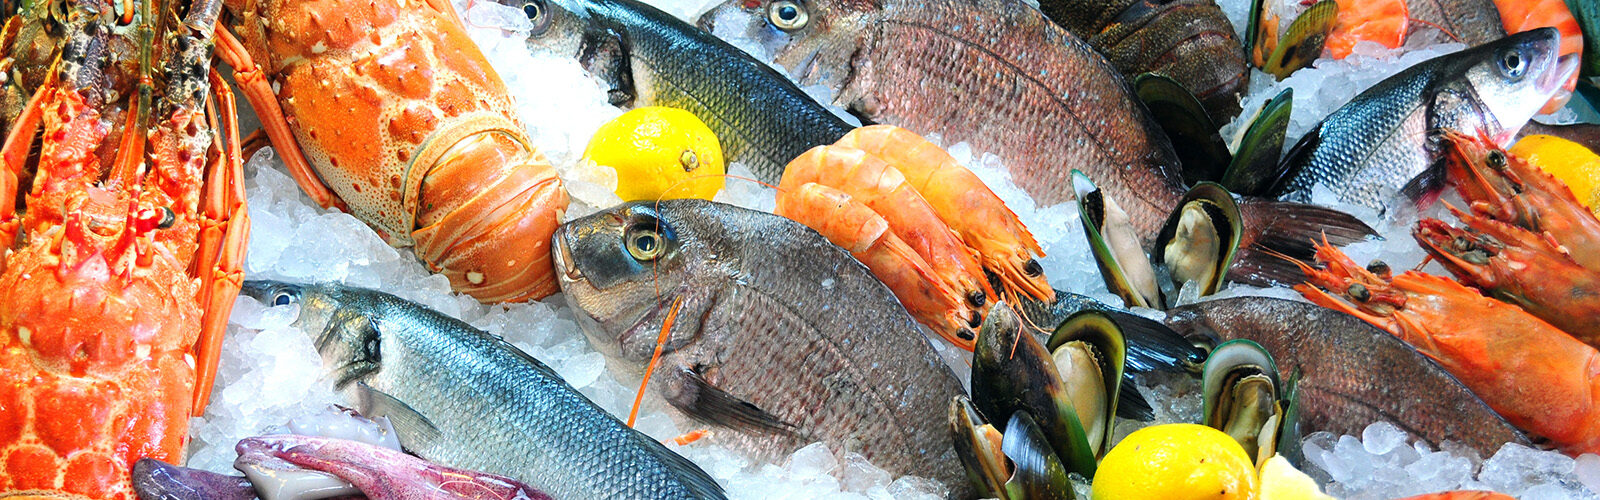 Aquatic foods a 'win-win' for people and planet